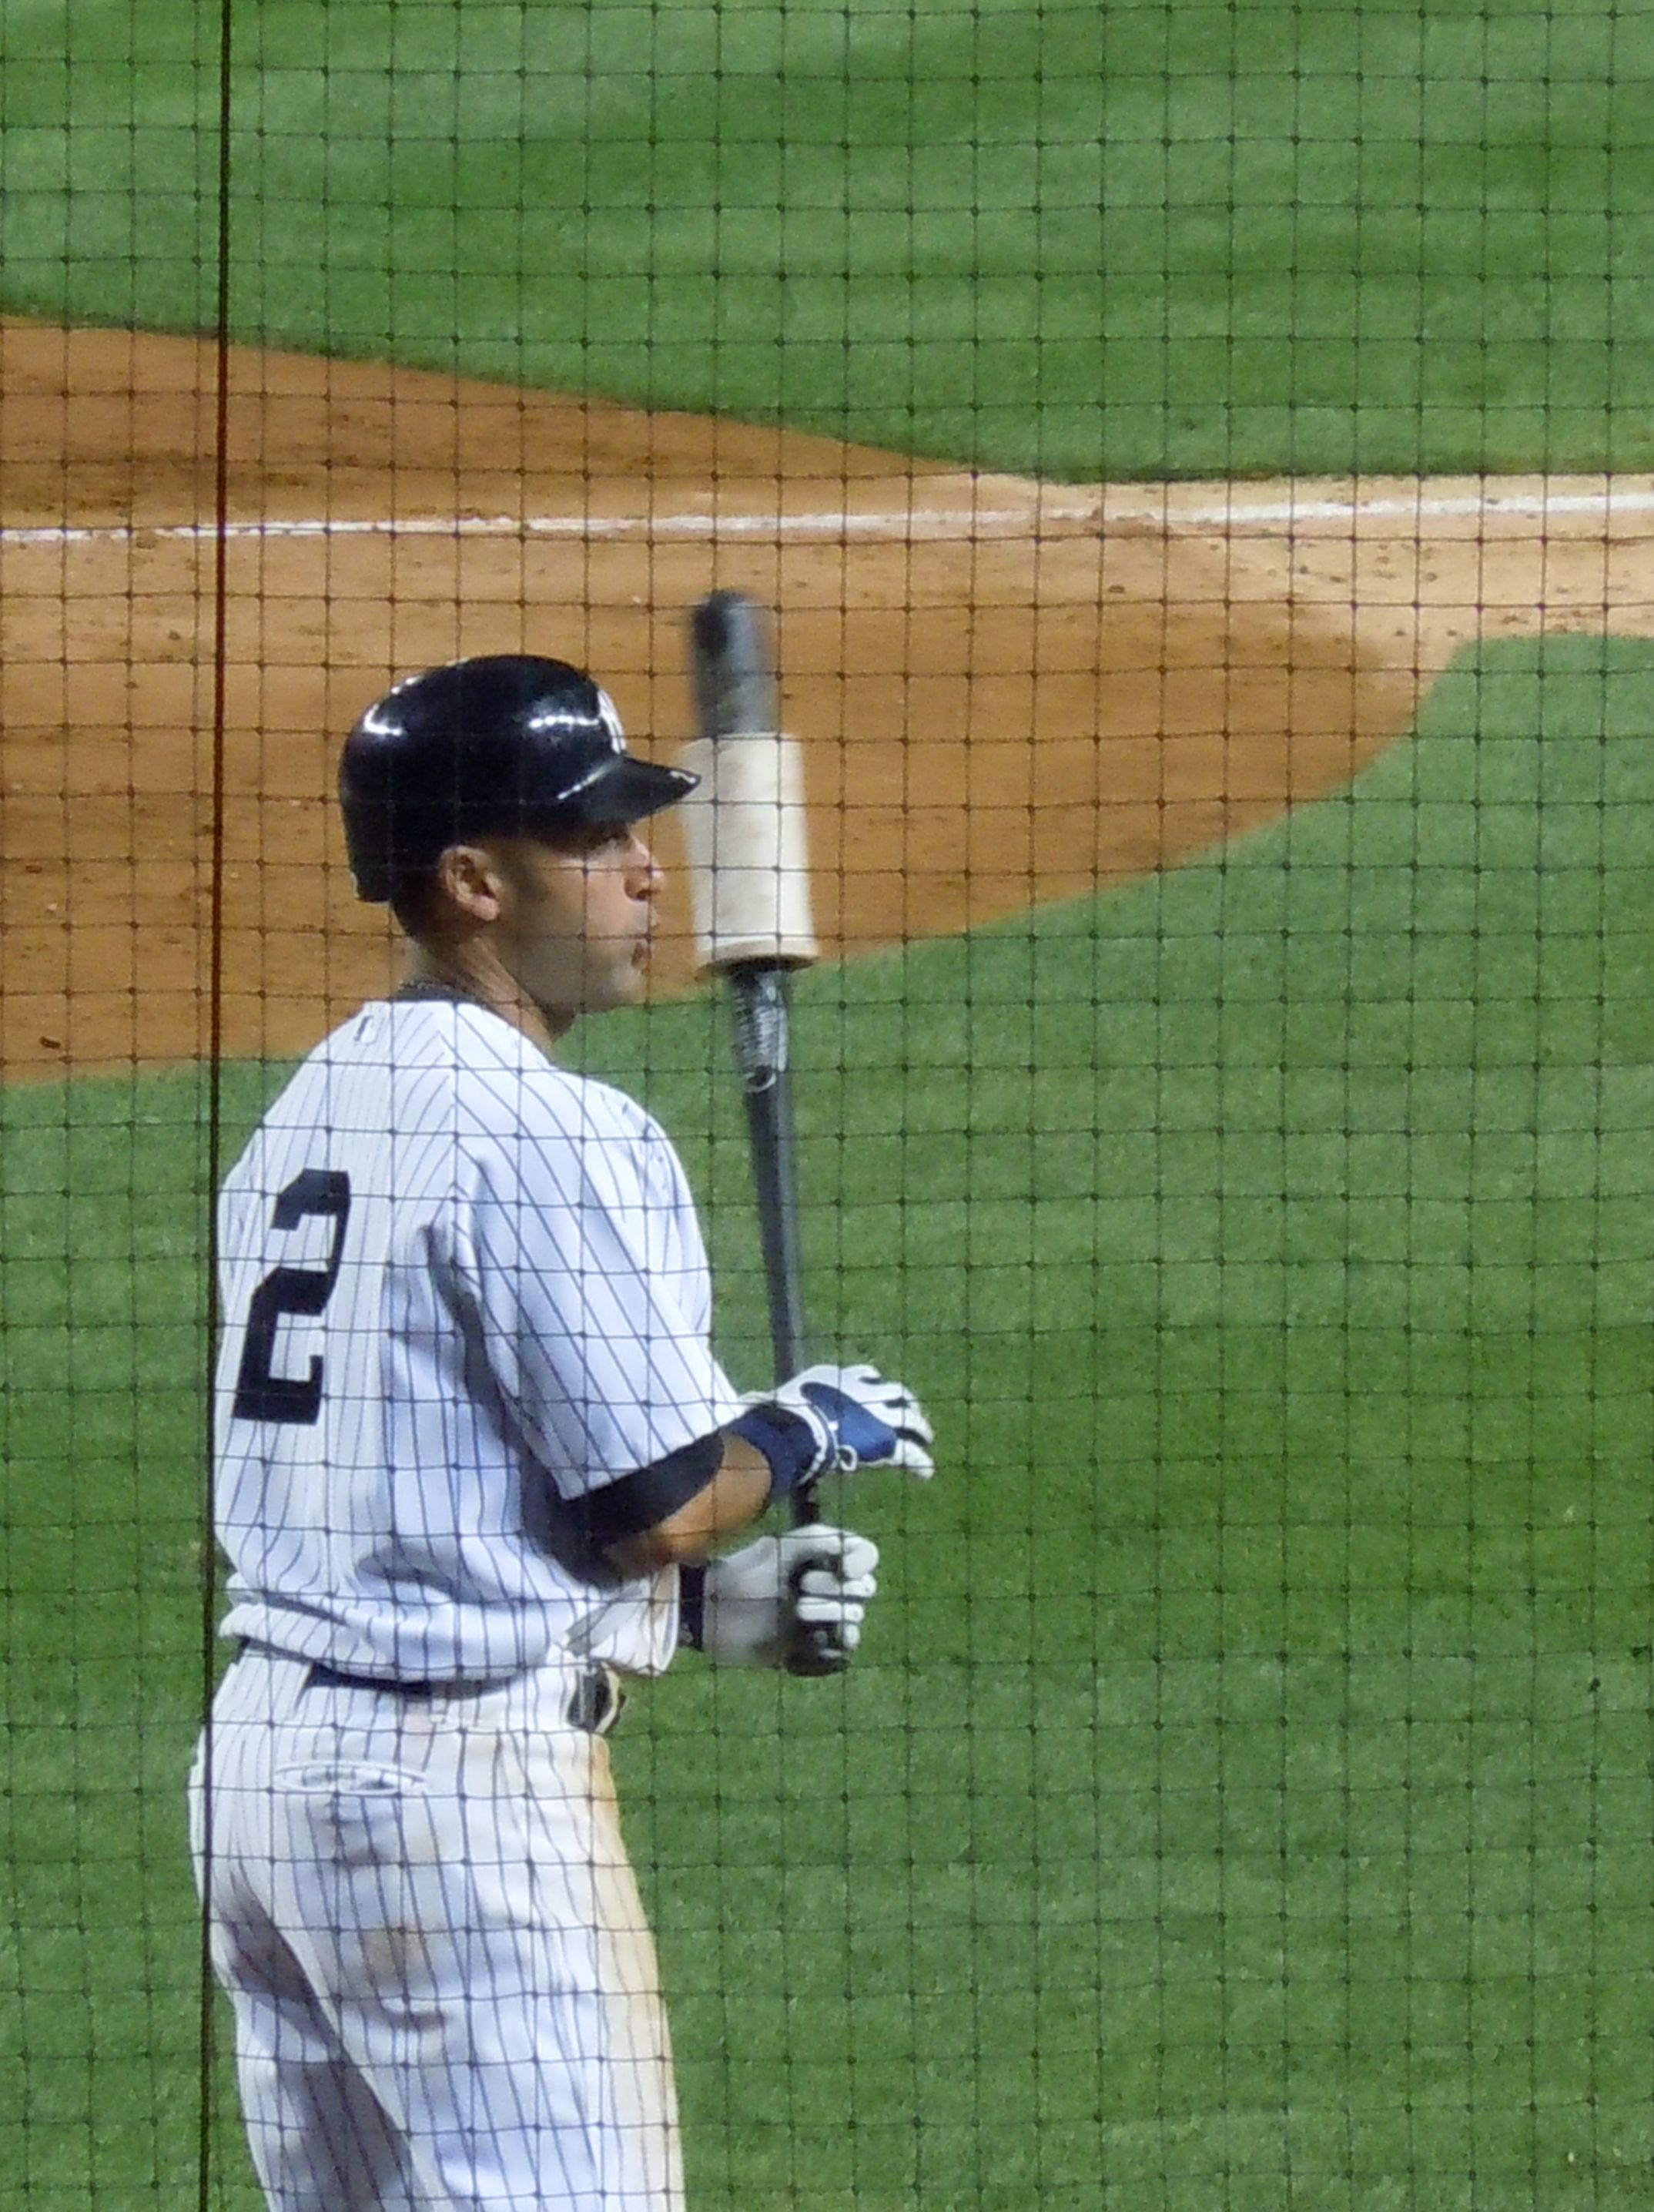 A New York Yankees Legend Derek Jeter New York Yankees Baseball New York Yankees Yankees